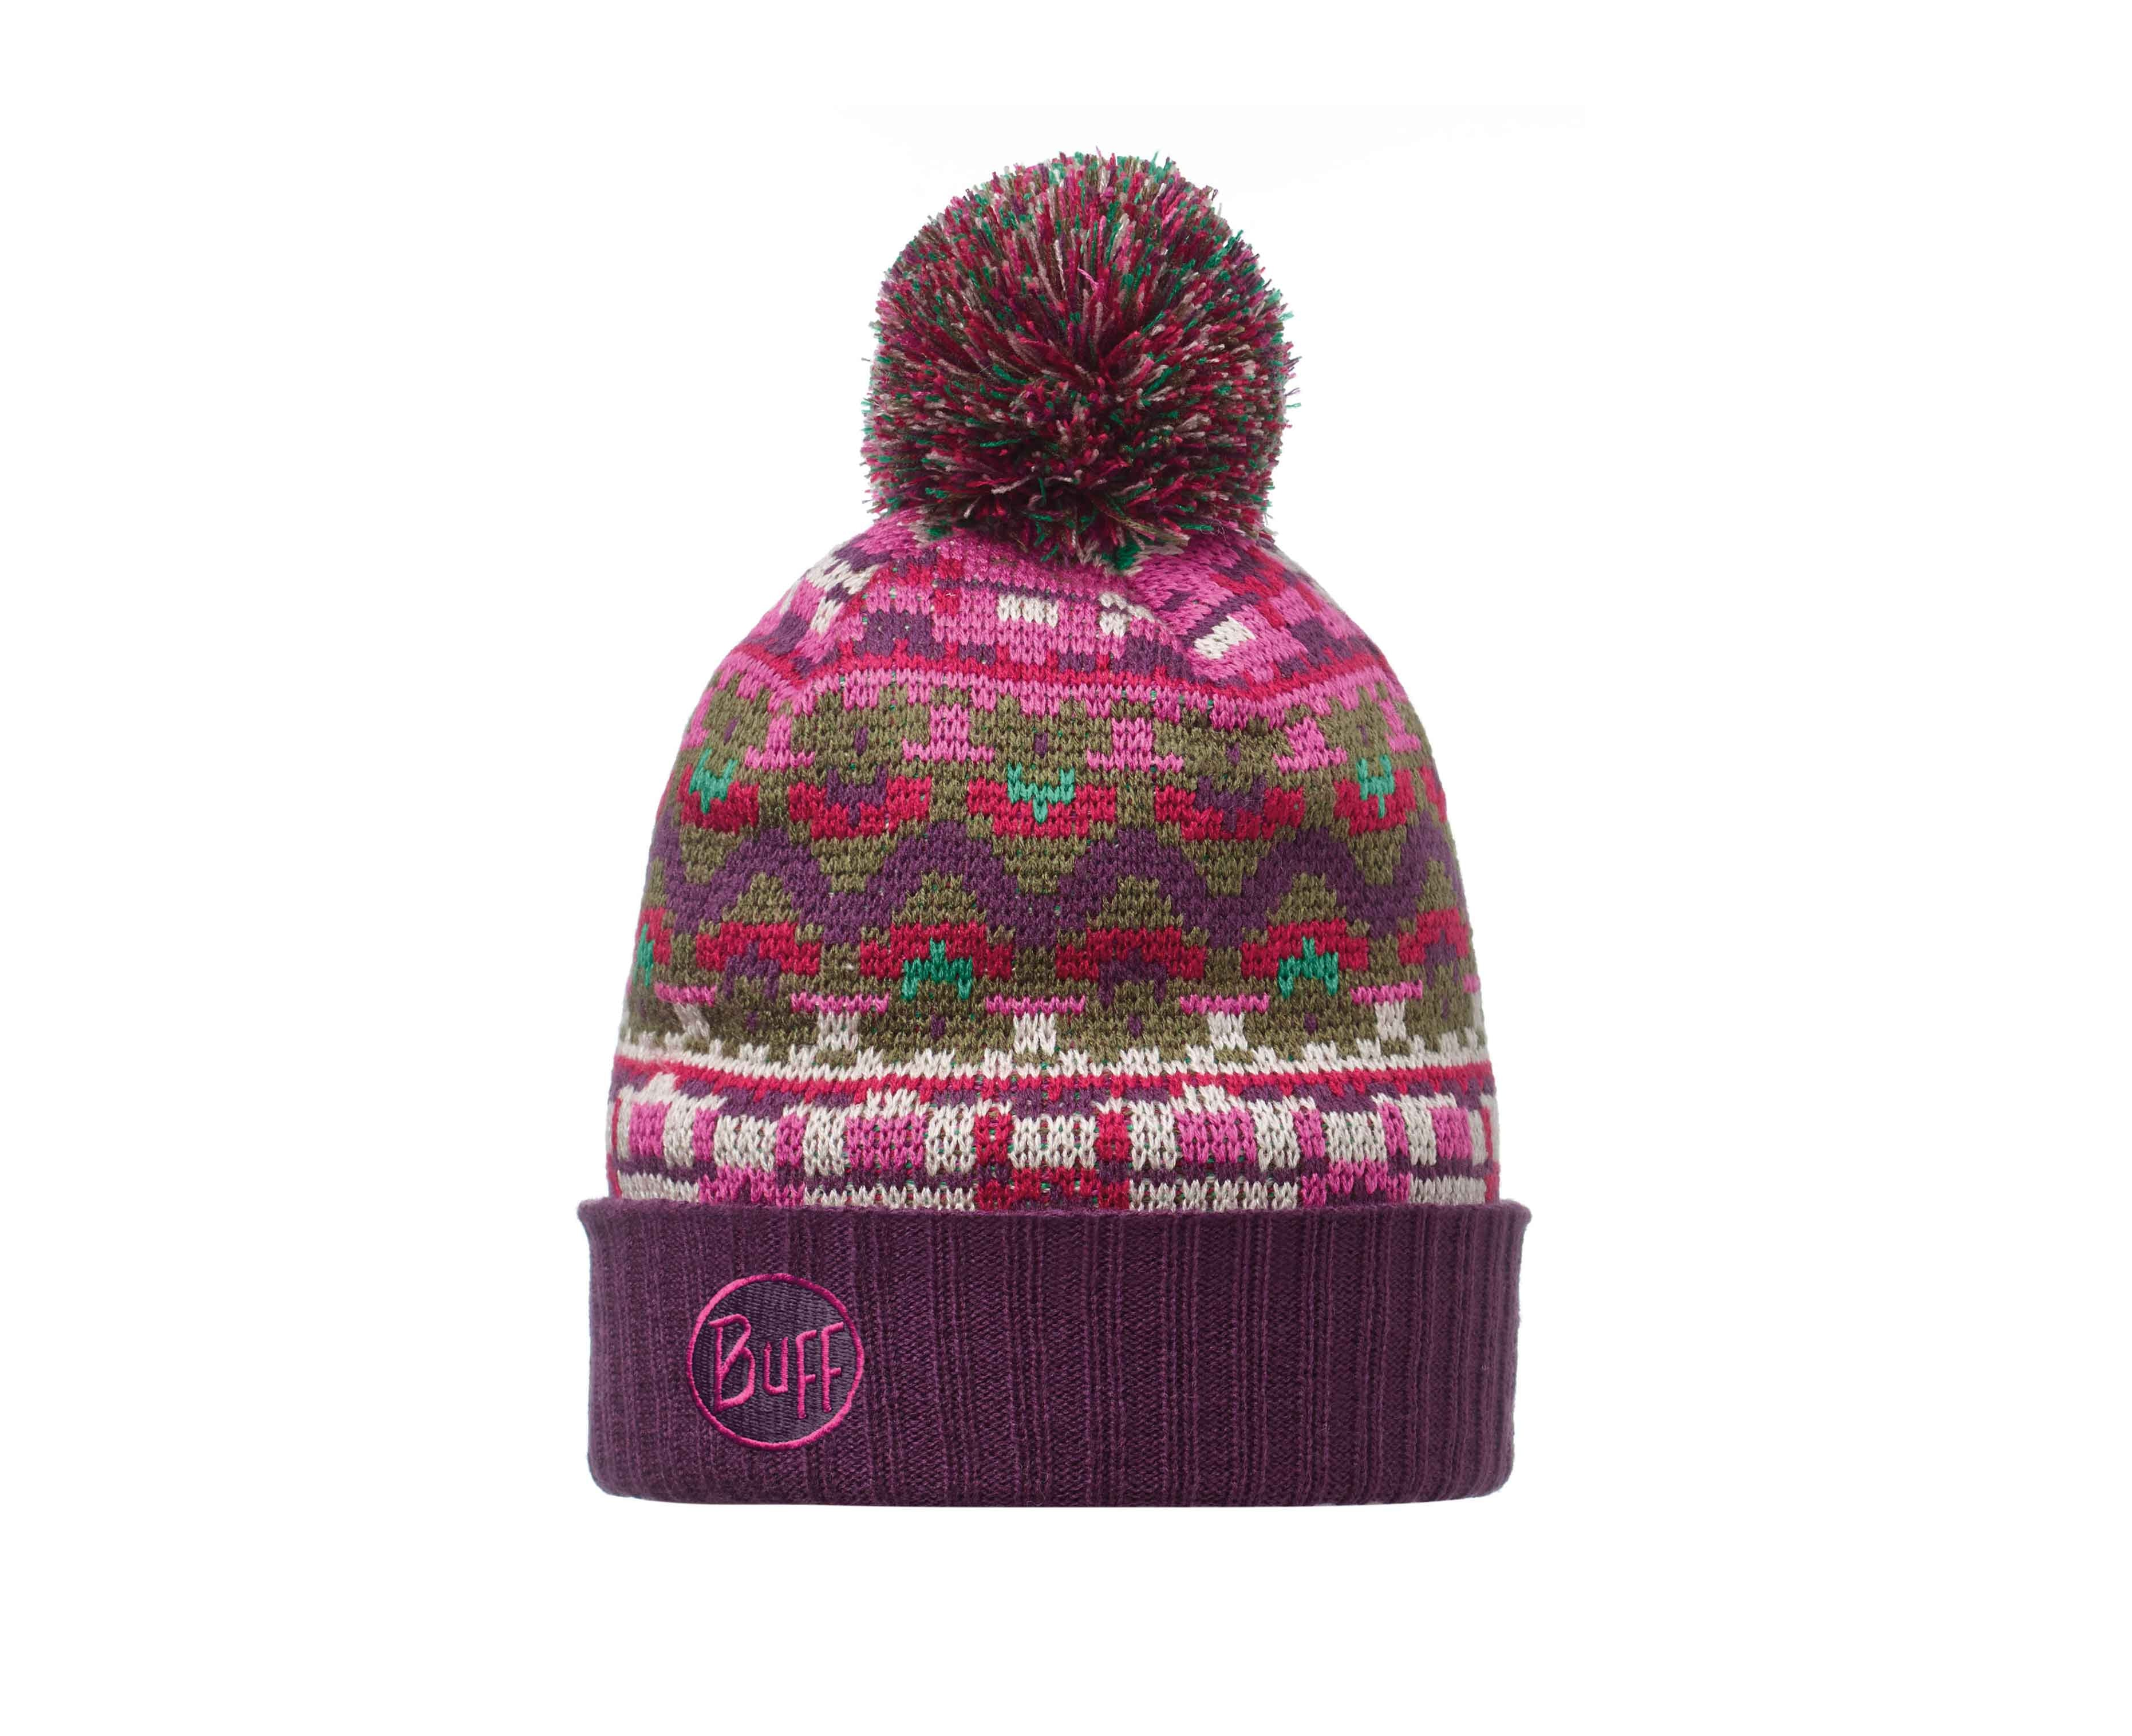 A buff branded winter hats sweepstakes